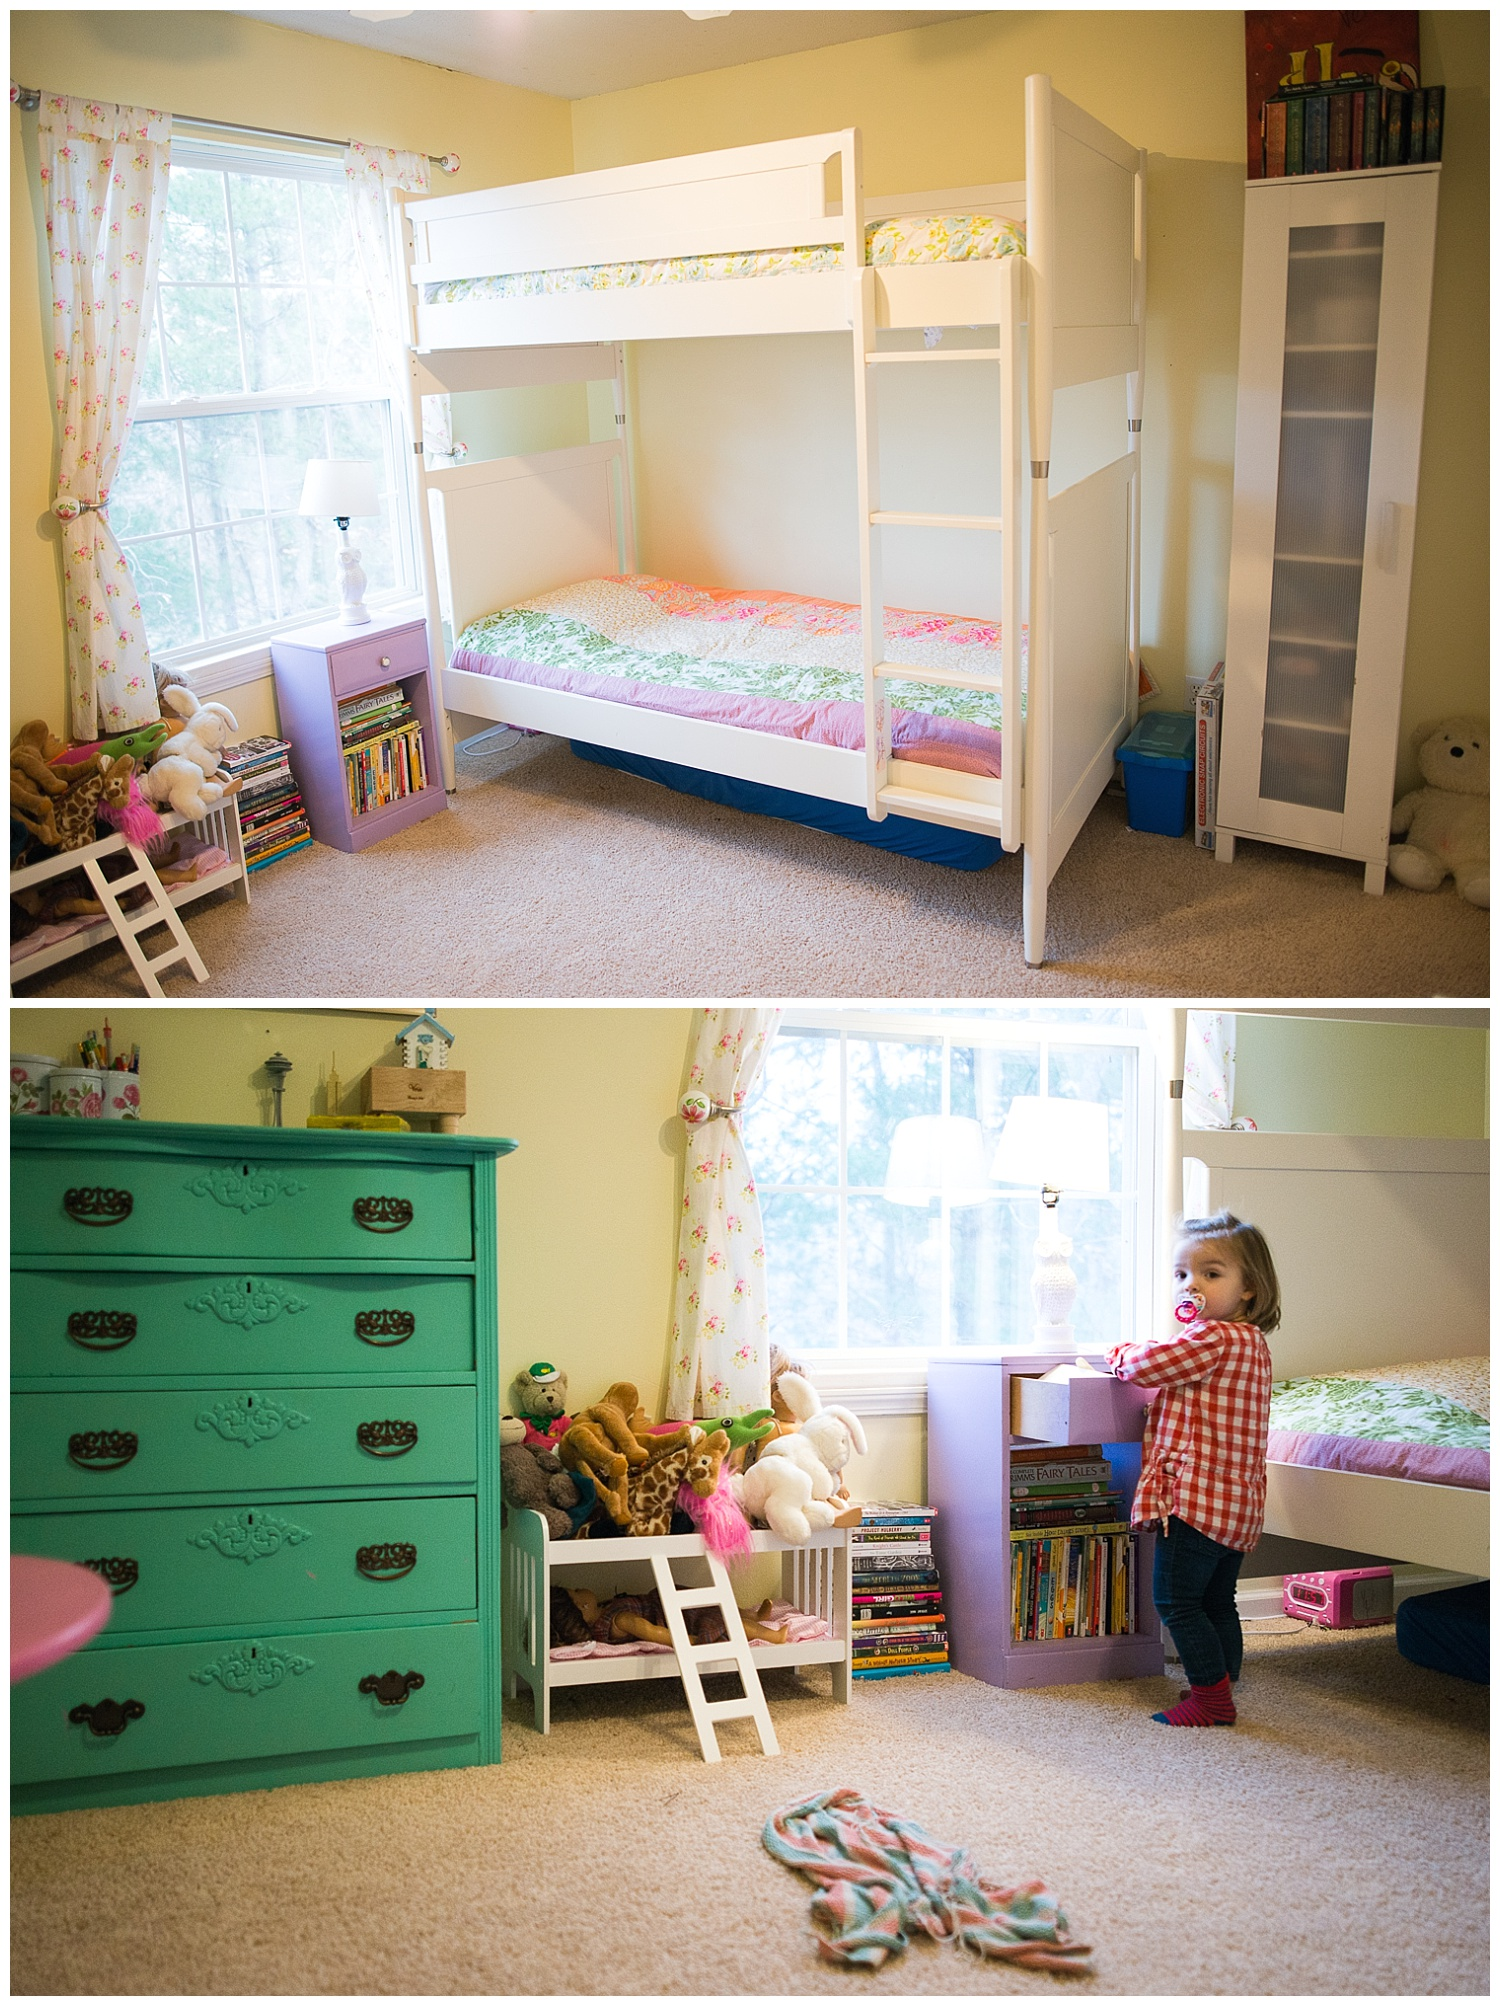 Faye and Vera began sharing this room when Holly was born.  Again, Helen made the curtains and bedding during her fabric arts phase.  The dresser was Helen's as a child and she modernized it with a coat of paint.